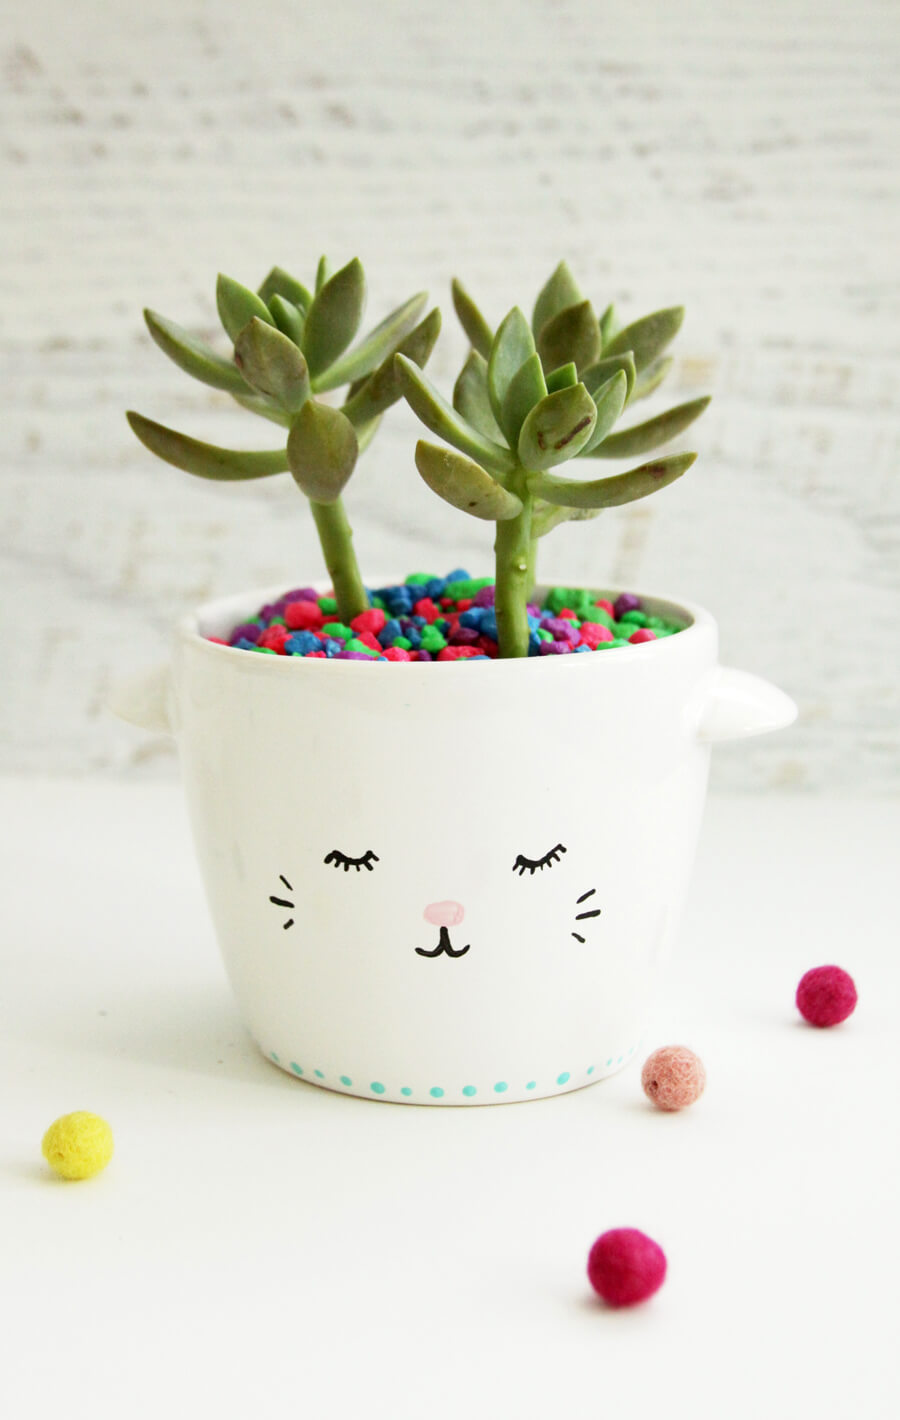 Loveable Llama Teacup Succulent Mini Planter